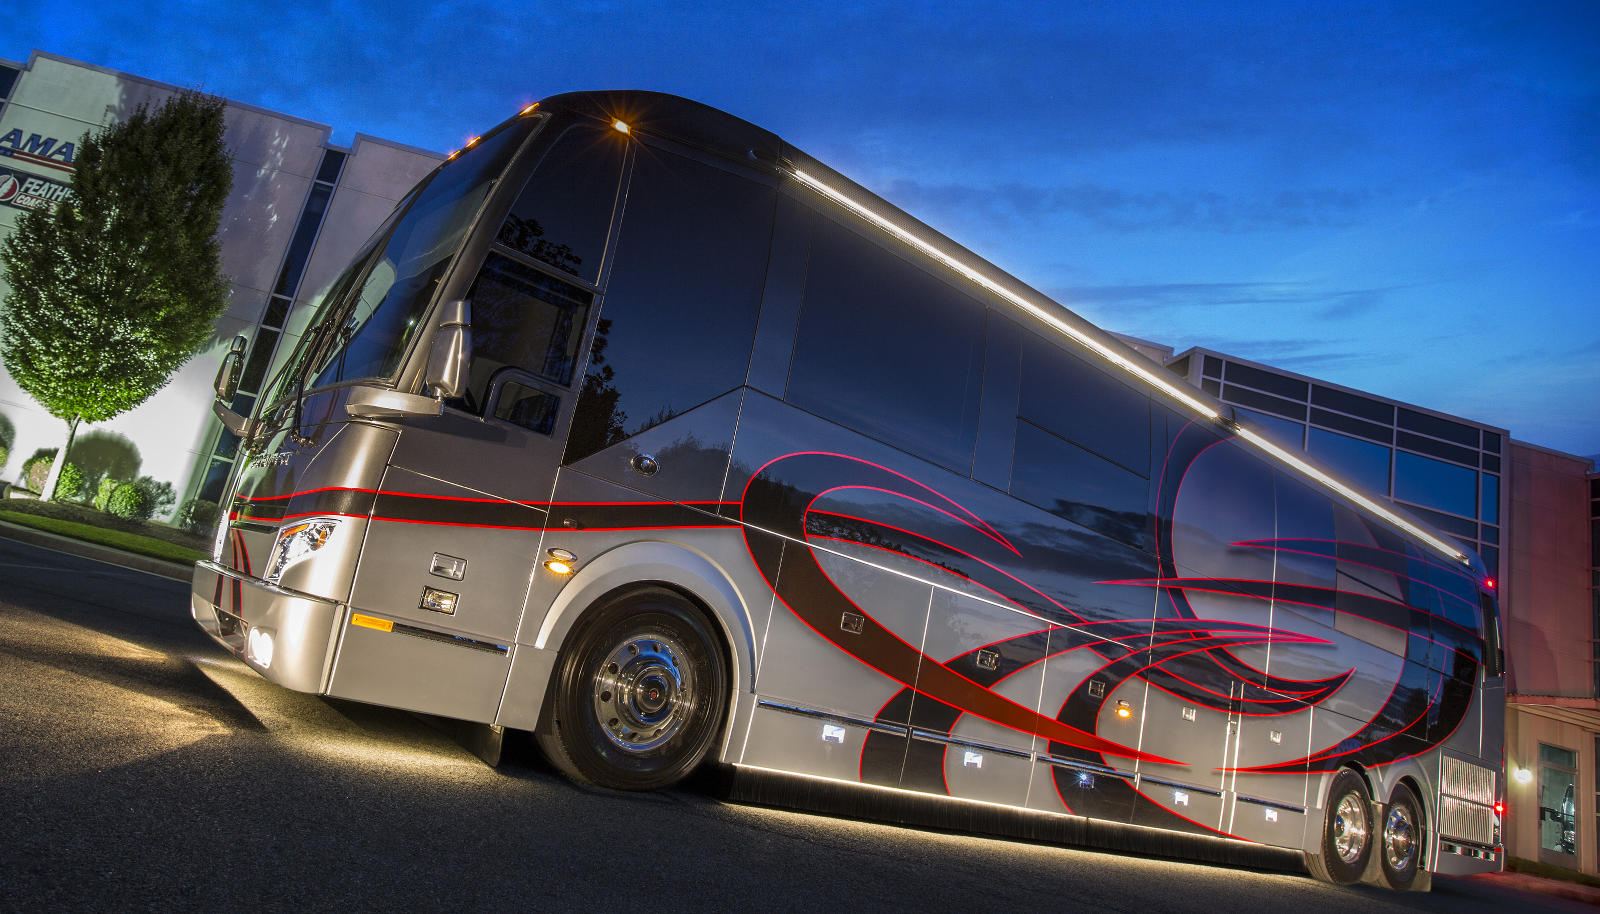 Featherlite Coaches Luxury Prevost Conversions Motorhomes Trailers Wiring Diagram Slide 3